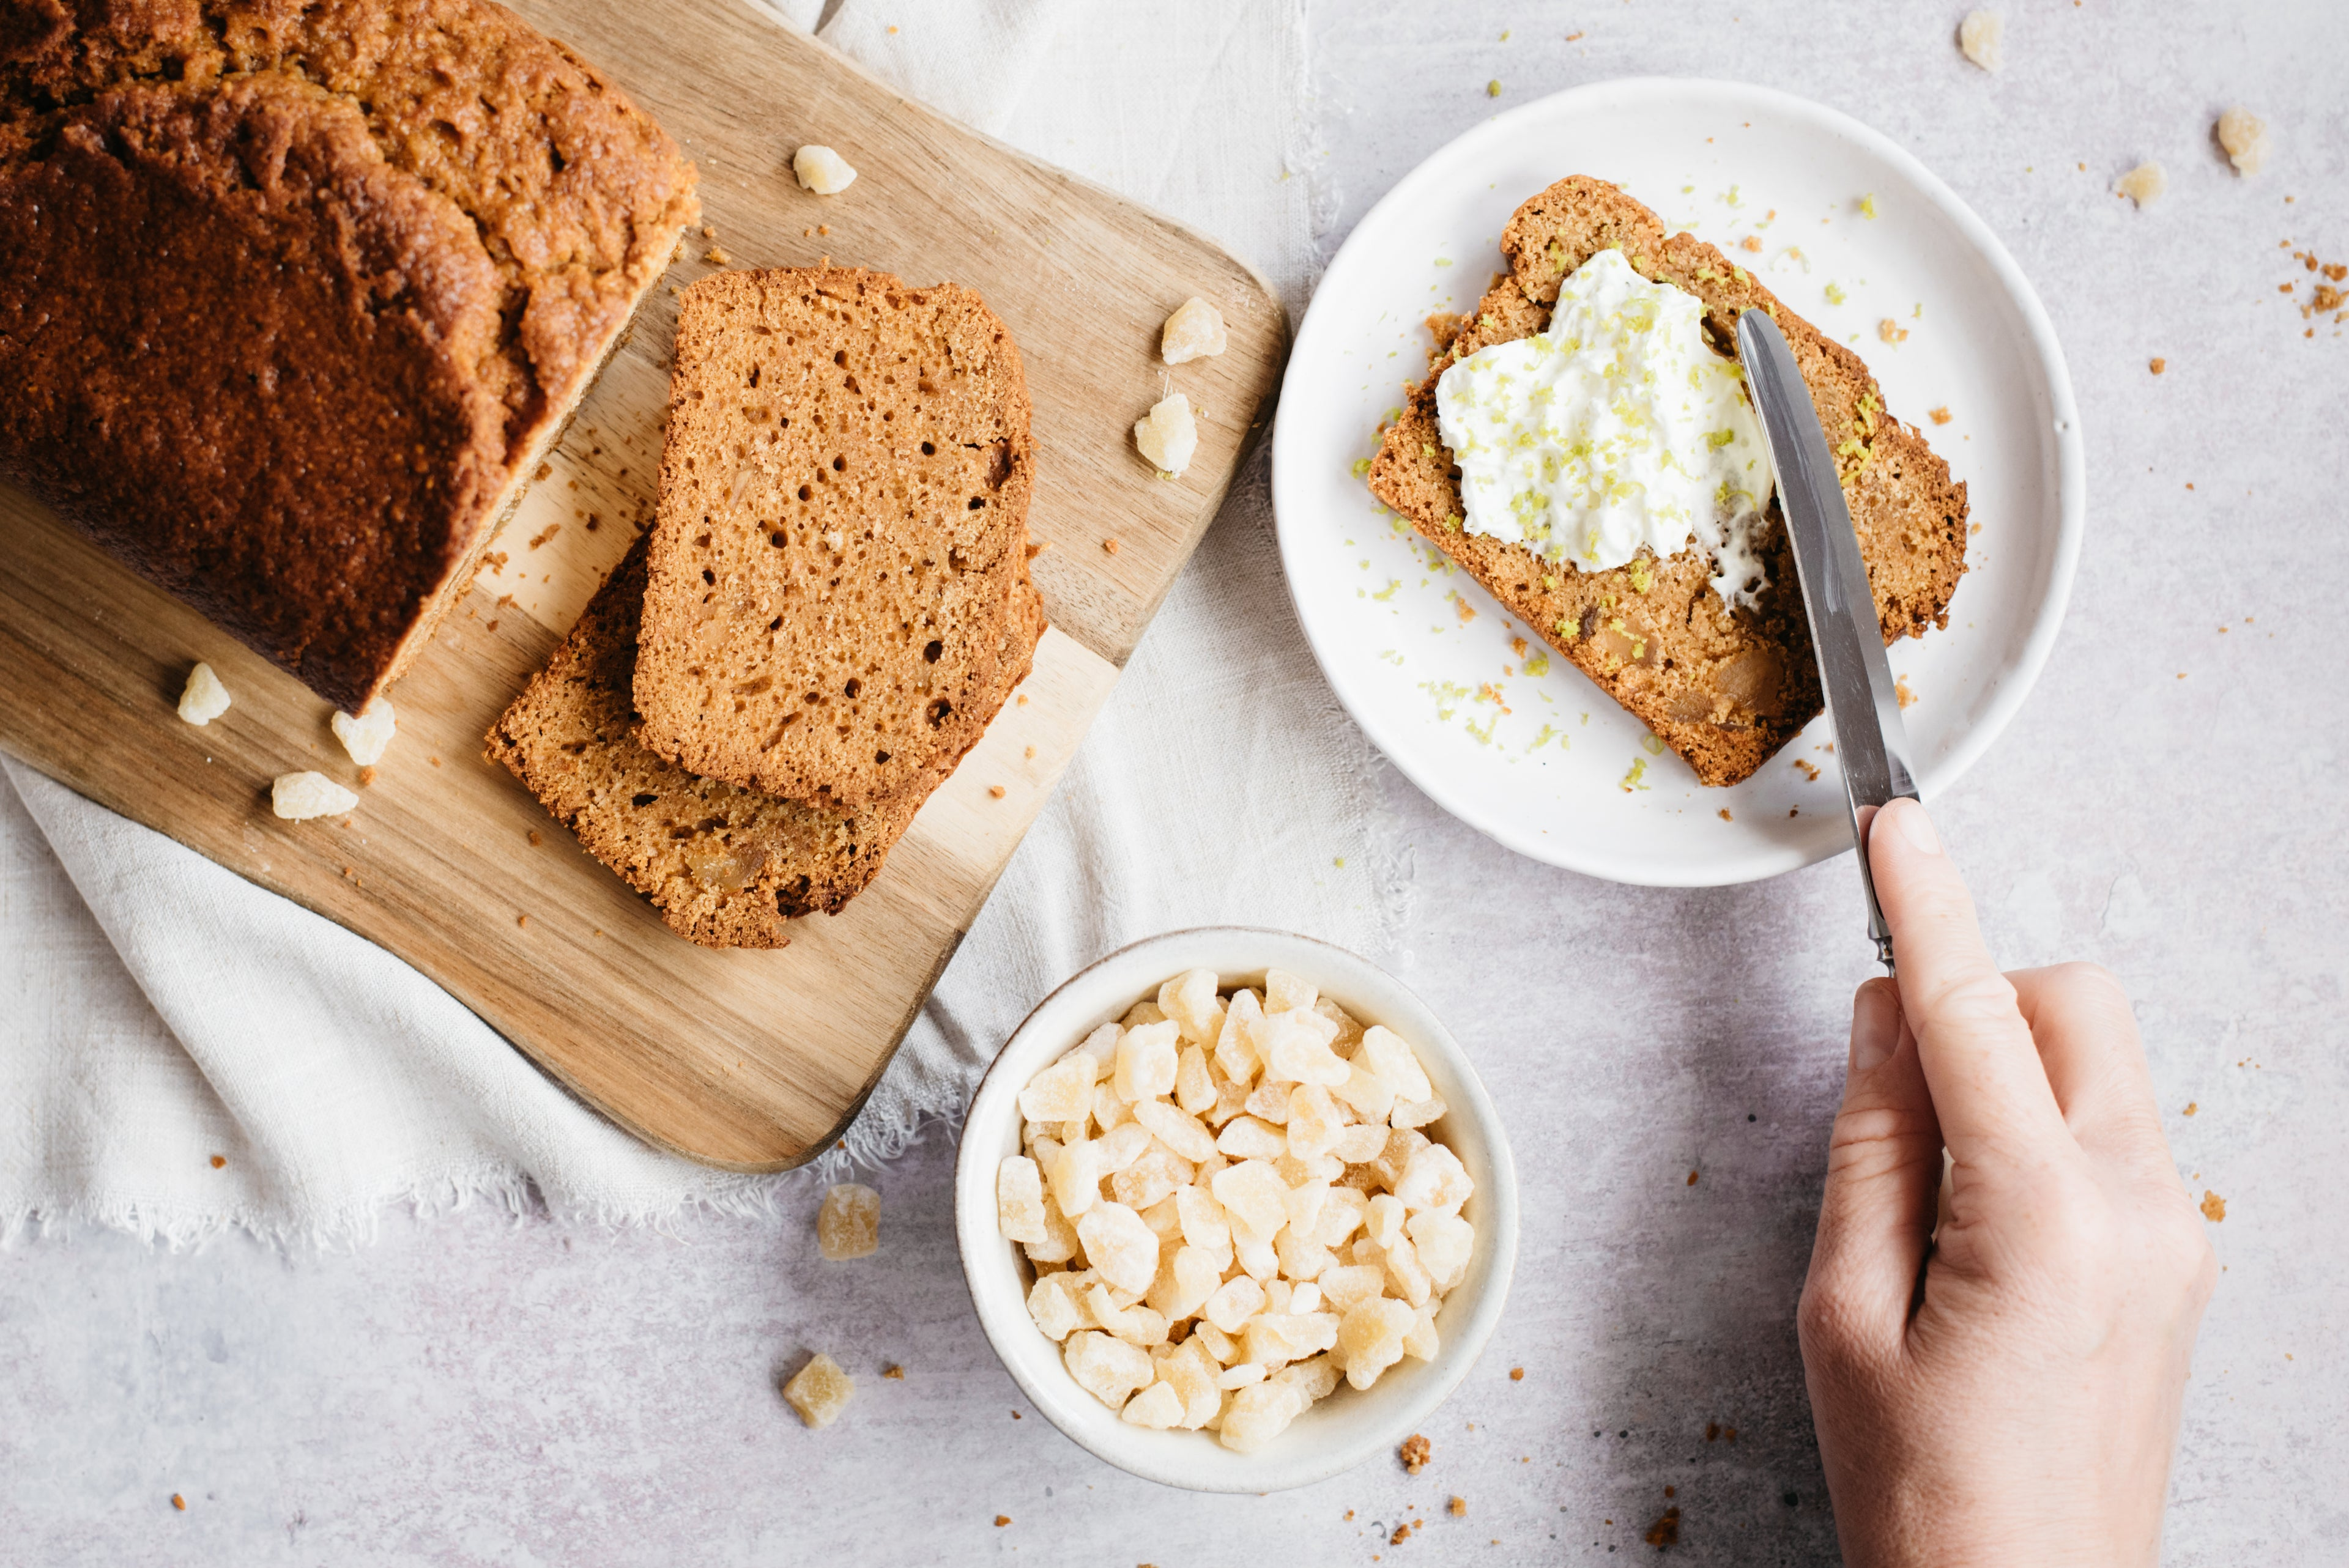 Flat lay of Gingerbread Loaf on a serving board, next to a bowl of ginger and a plate with a slice of Gingerbread Loaf with a hand buttering it